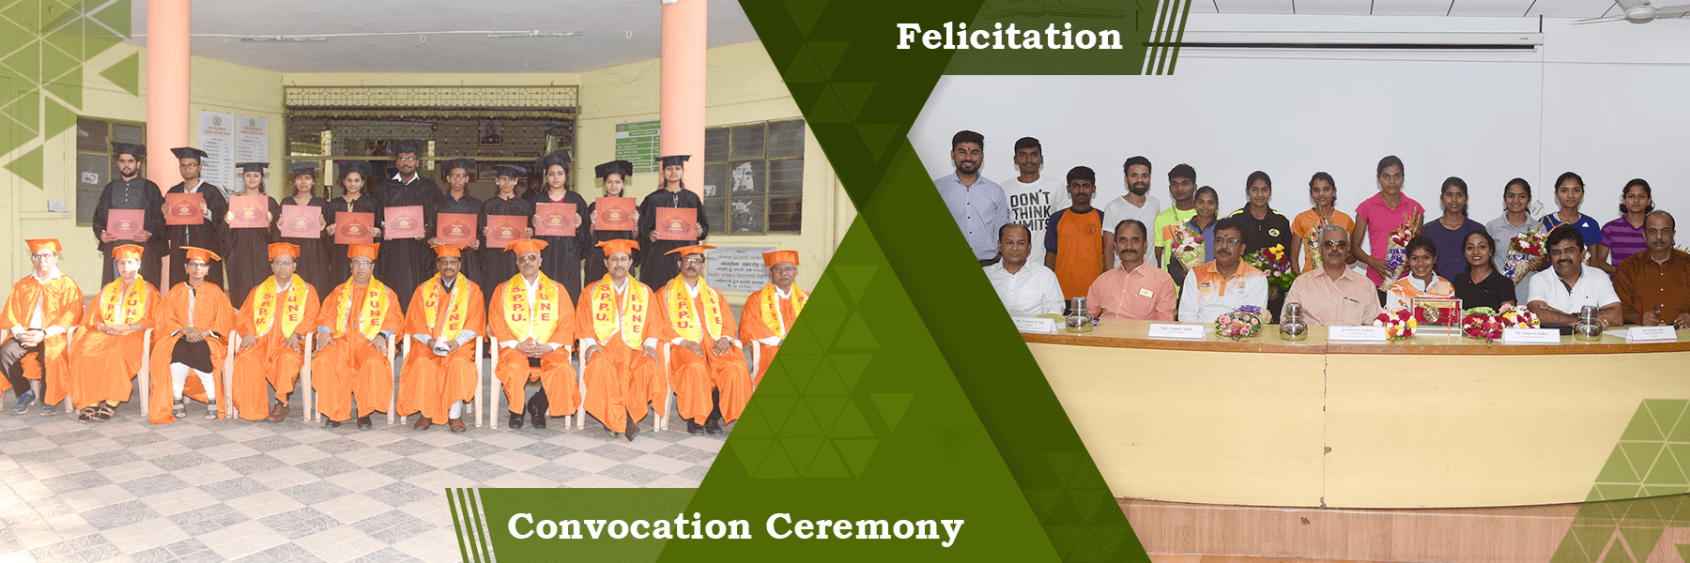 Convocation_1